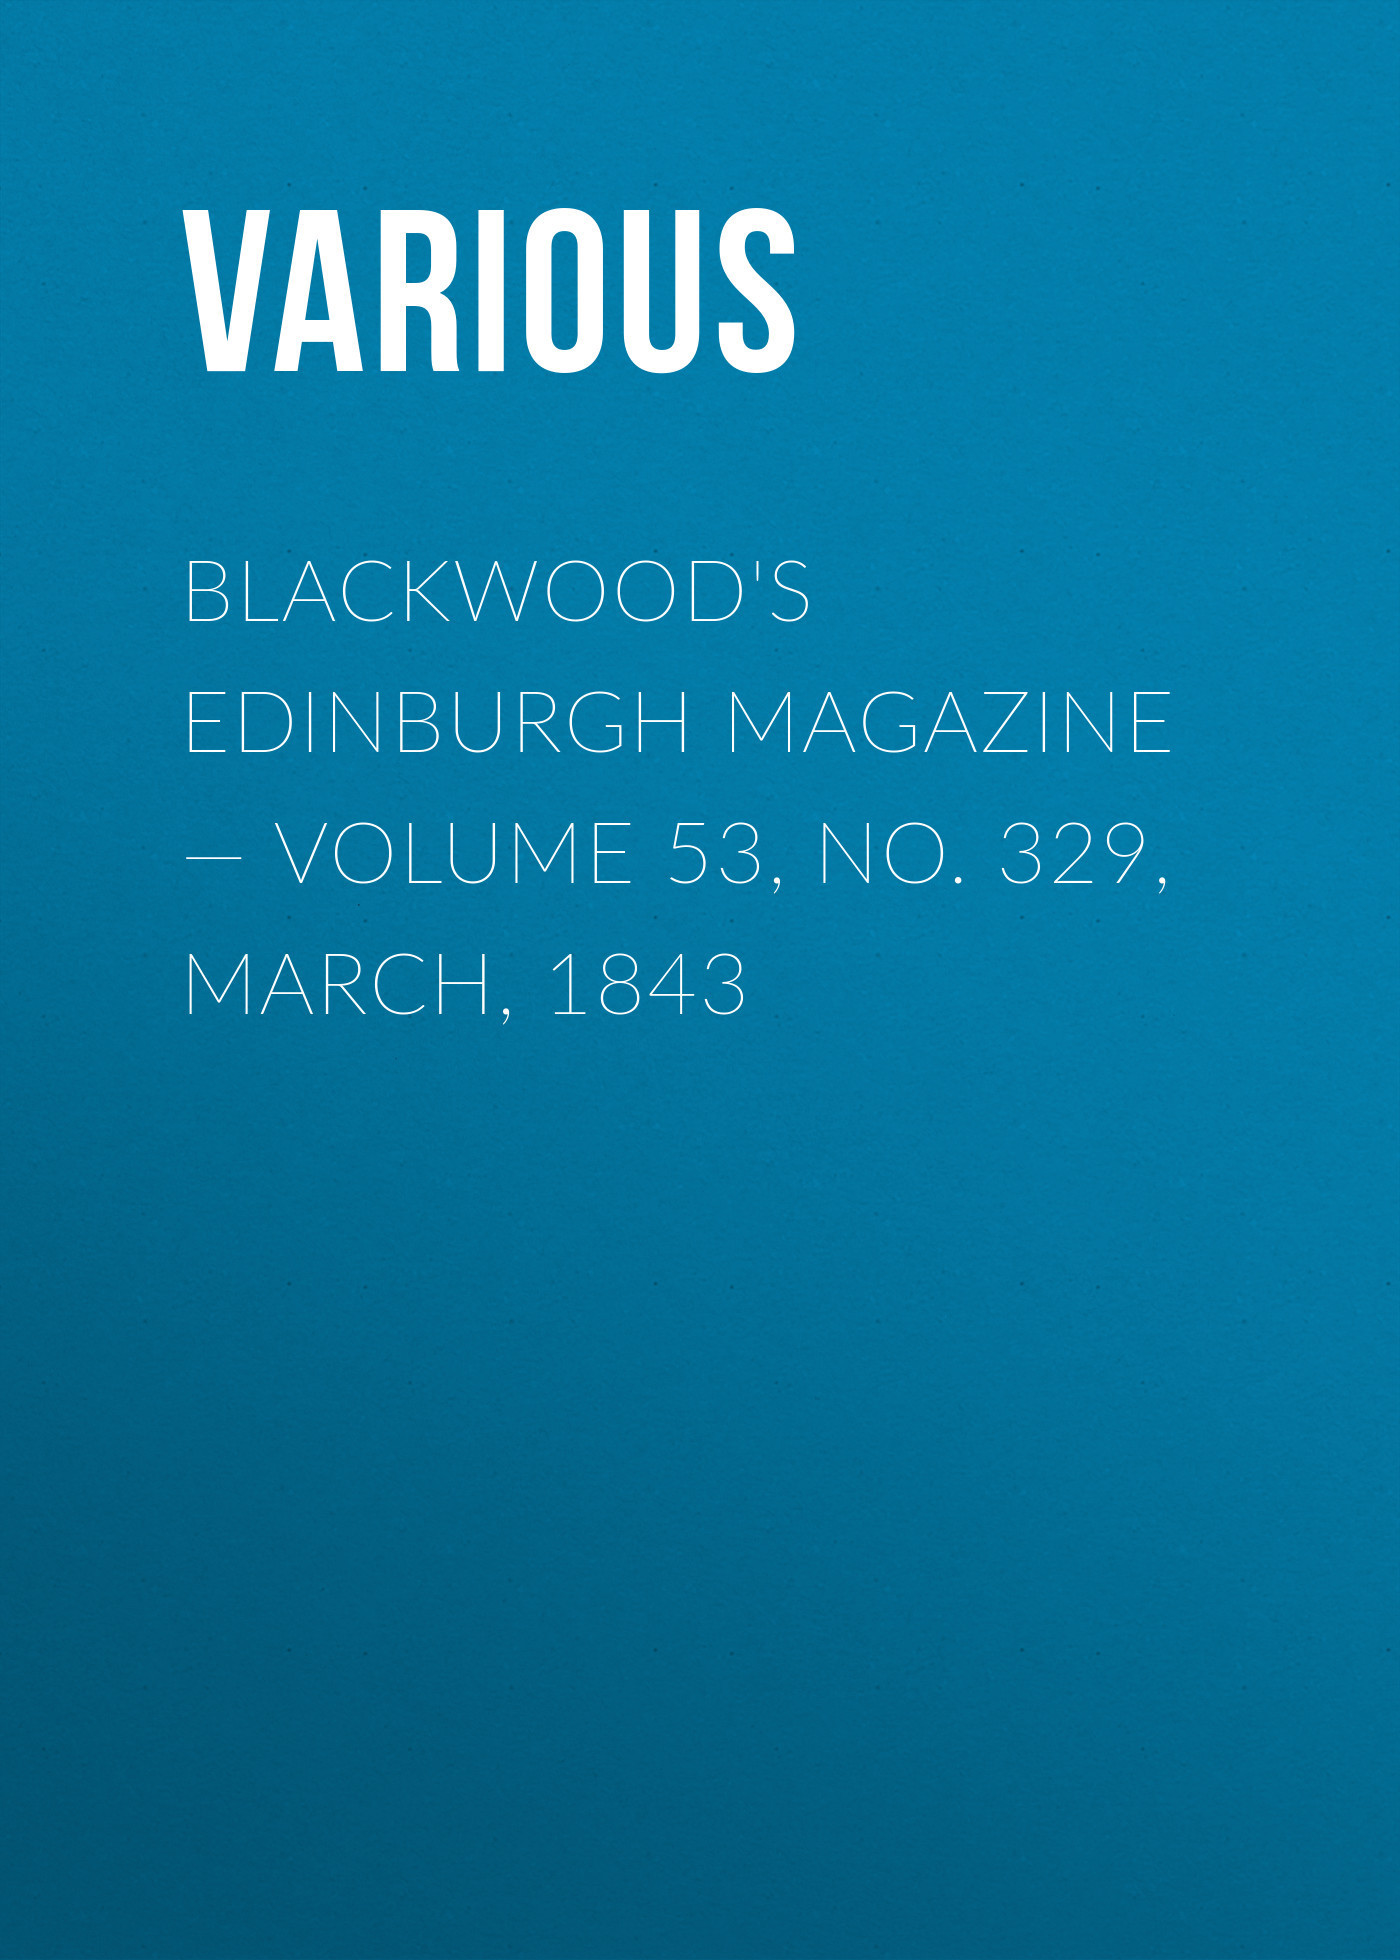 Blackwood's Edinburgh Magazine — Volume 53, No. 329, March, 1843